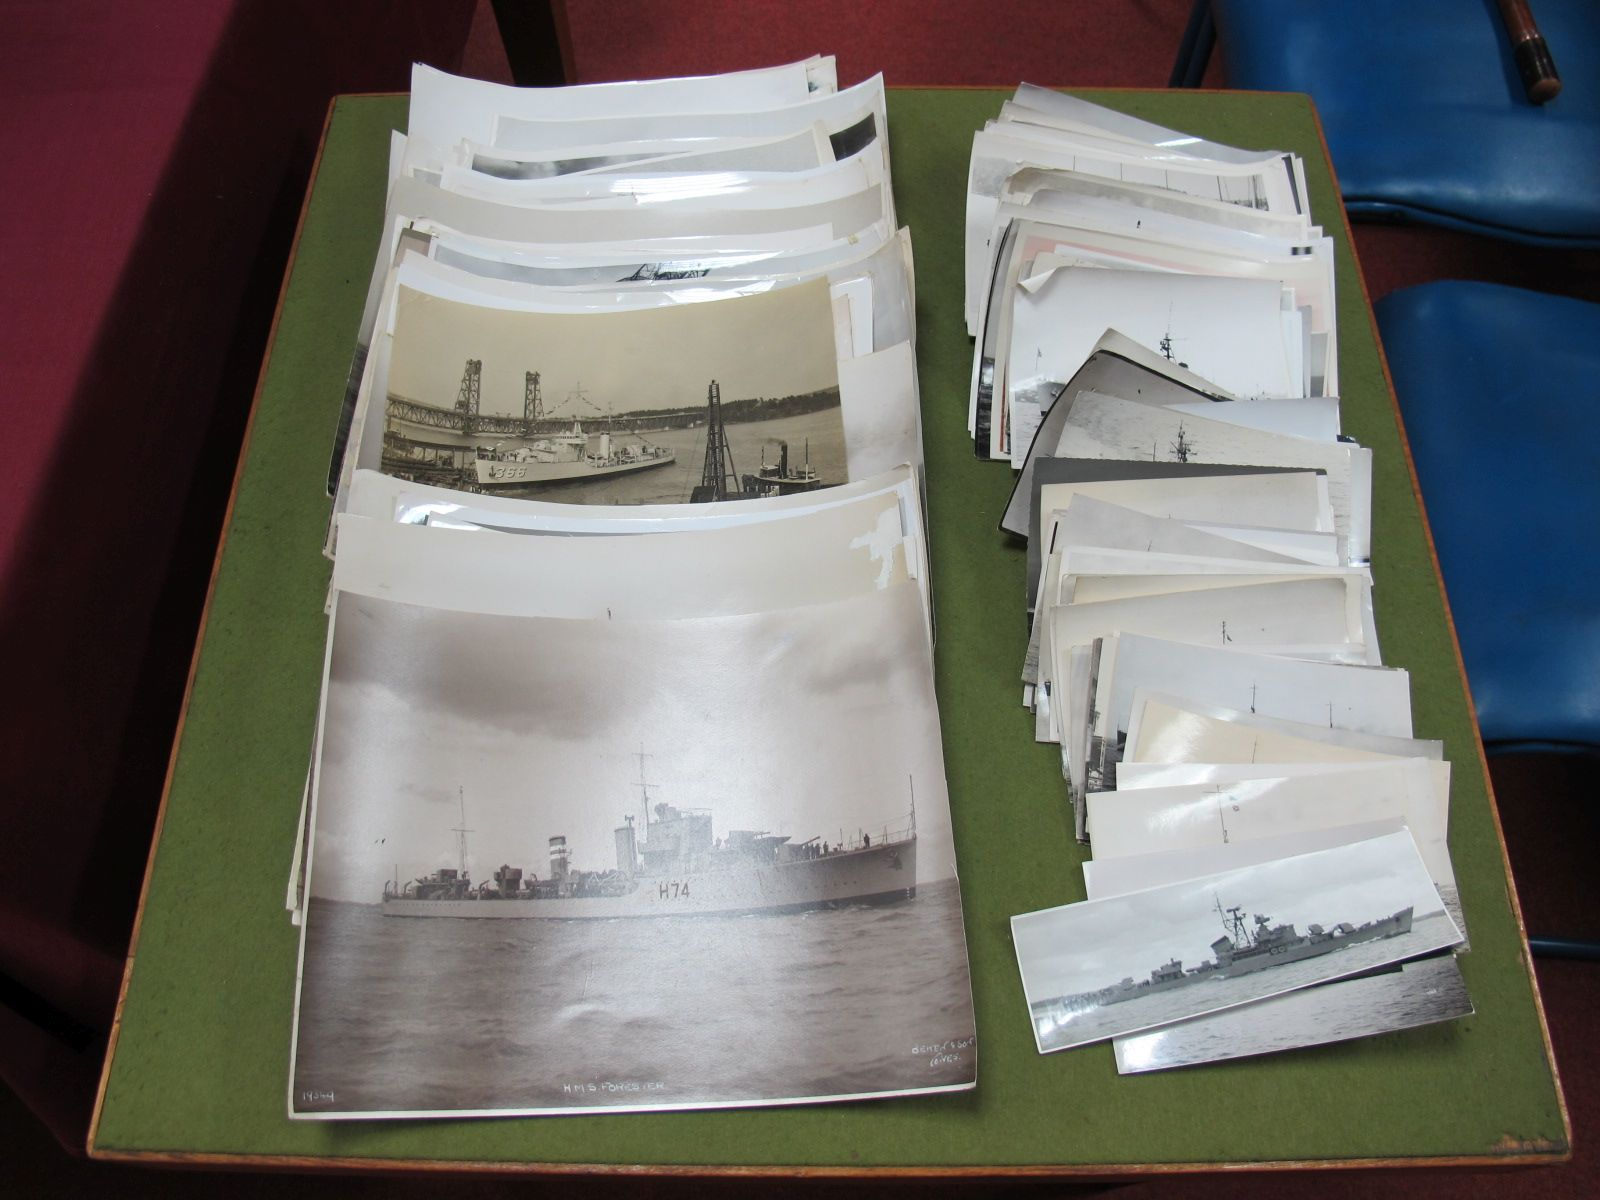 Lot 37 - A Large Quantity of Mid XX Century Often Official and Press Photographs of Naval Ships Around The